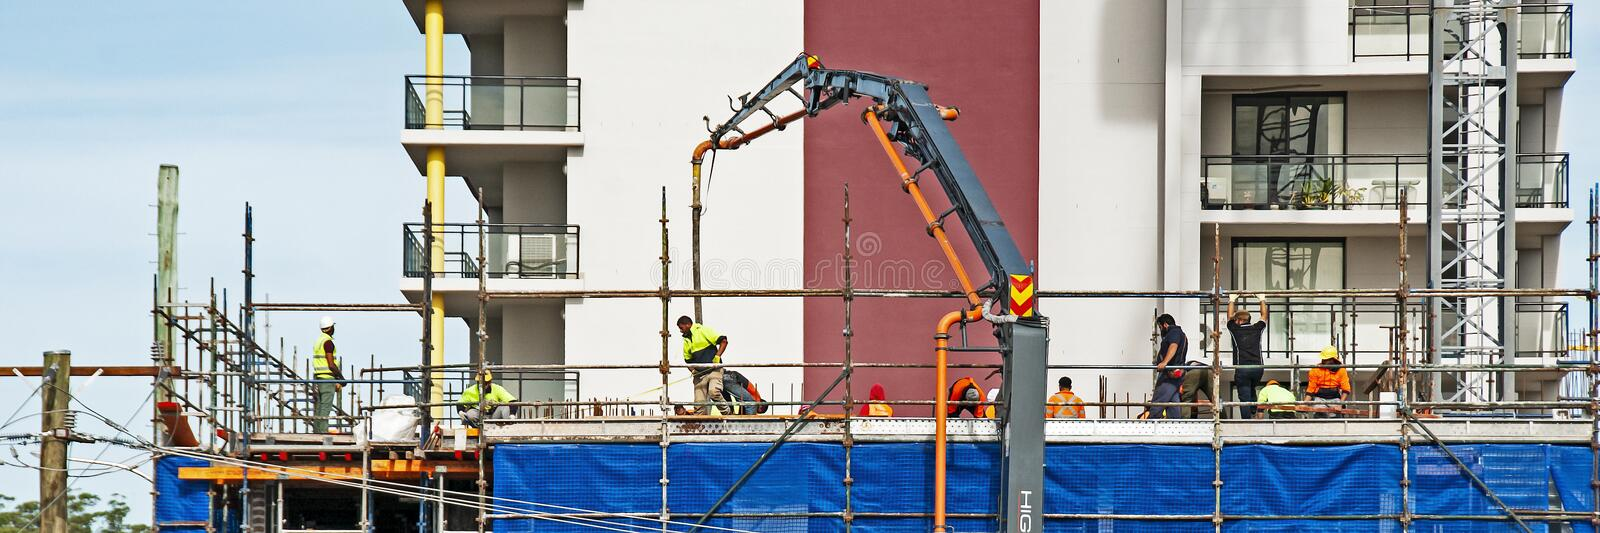 Building progress 90. 47 Beane St. Gosford. MNTH 2018. Gosford, New South Wales, Australia - June 13. 2018: Construction and building progress update 90 royalty free stock images